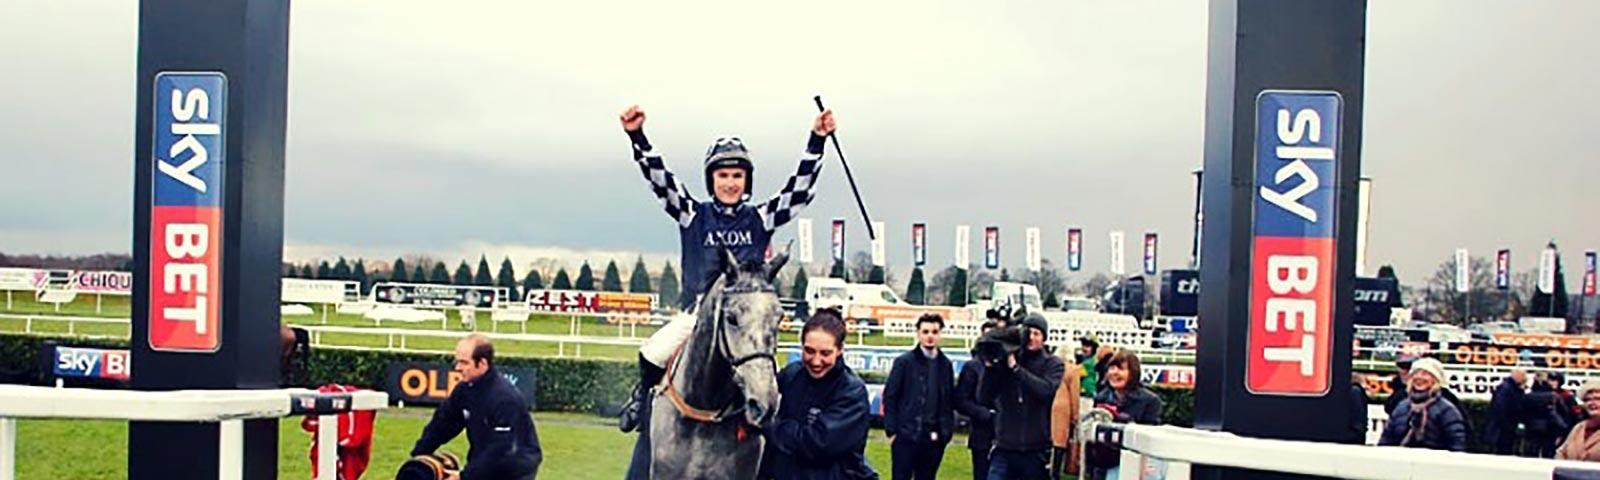 A winning jockey raising his hands at the end of a race at Doncaster Racecourse